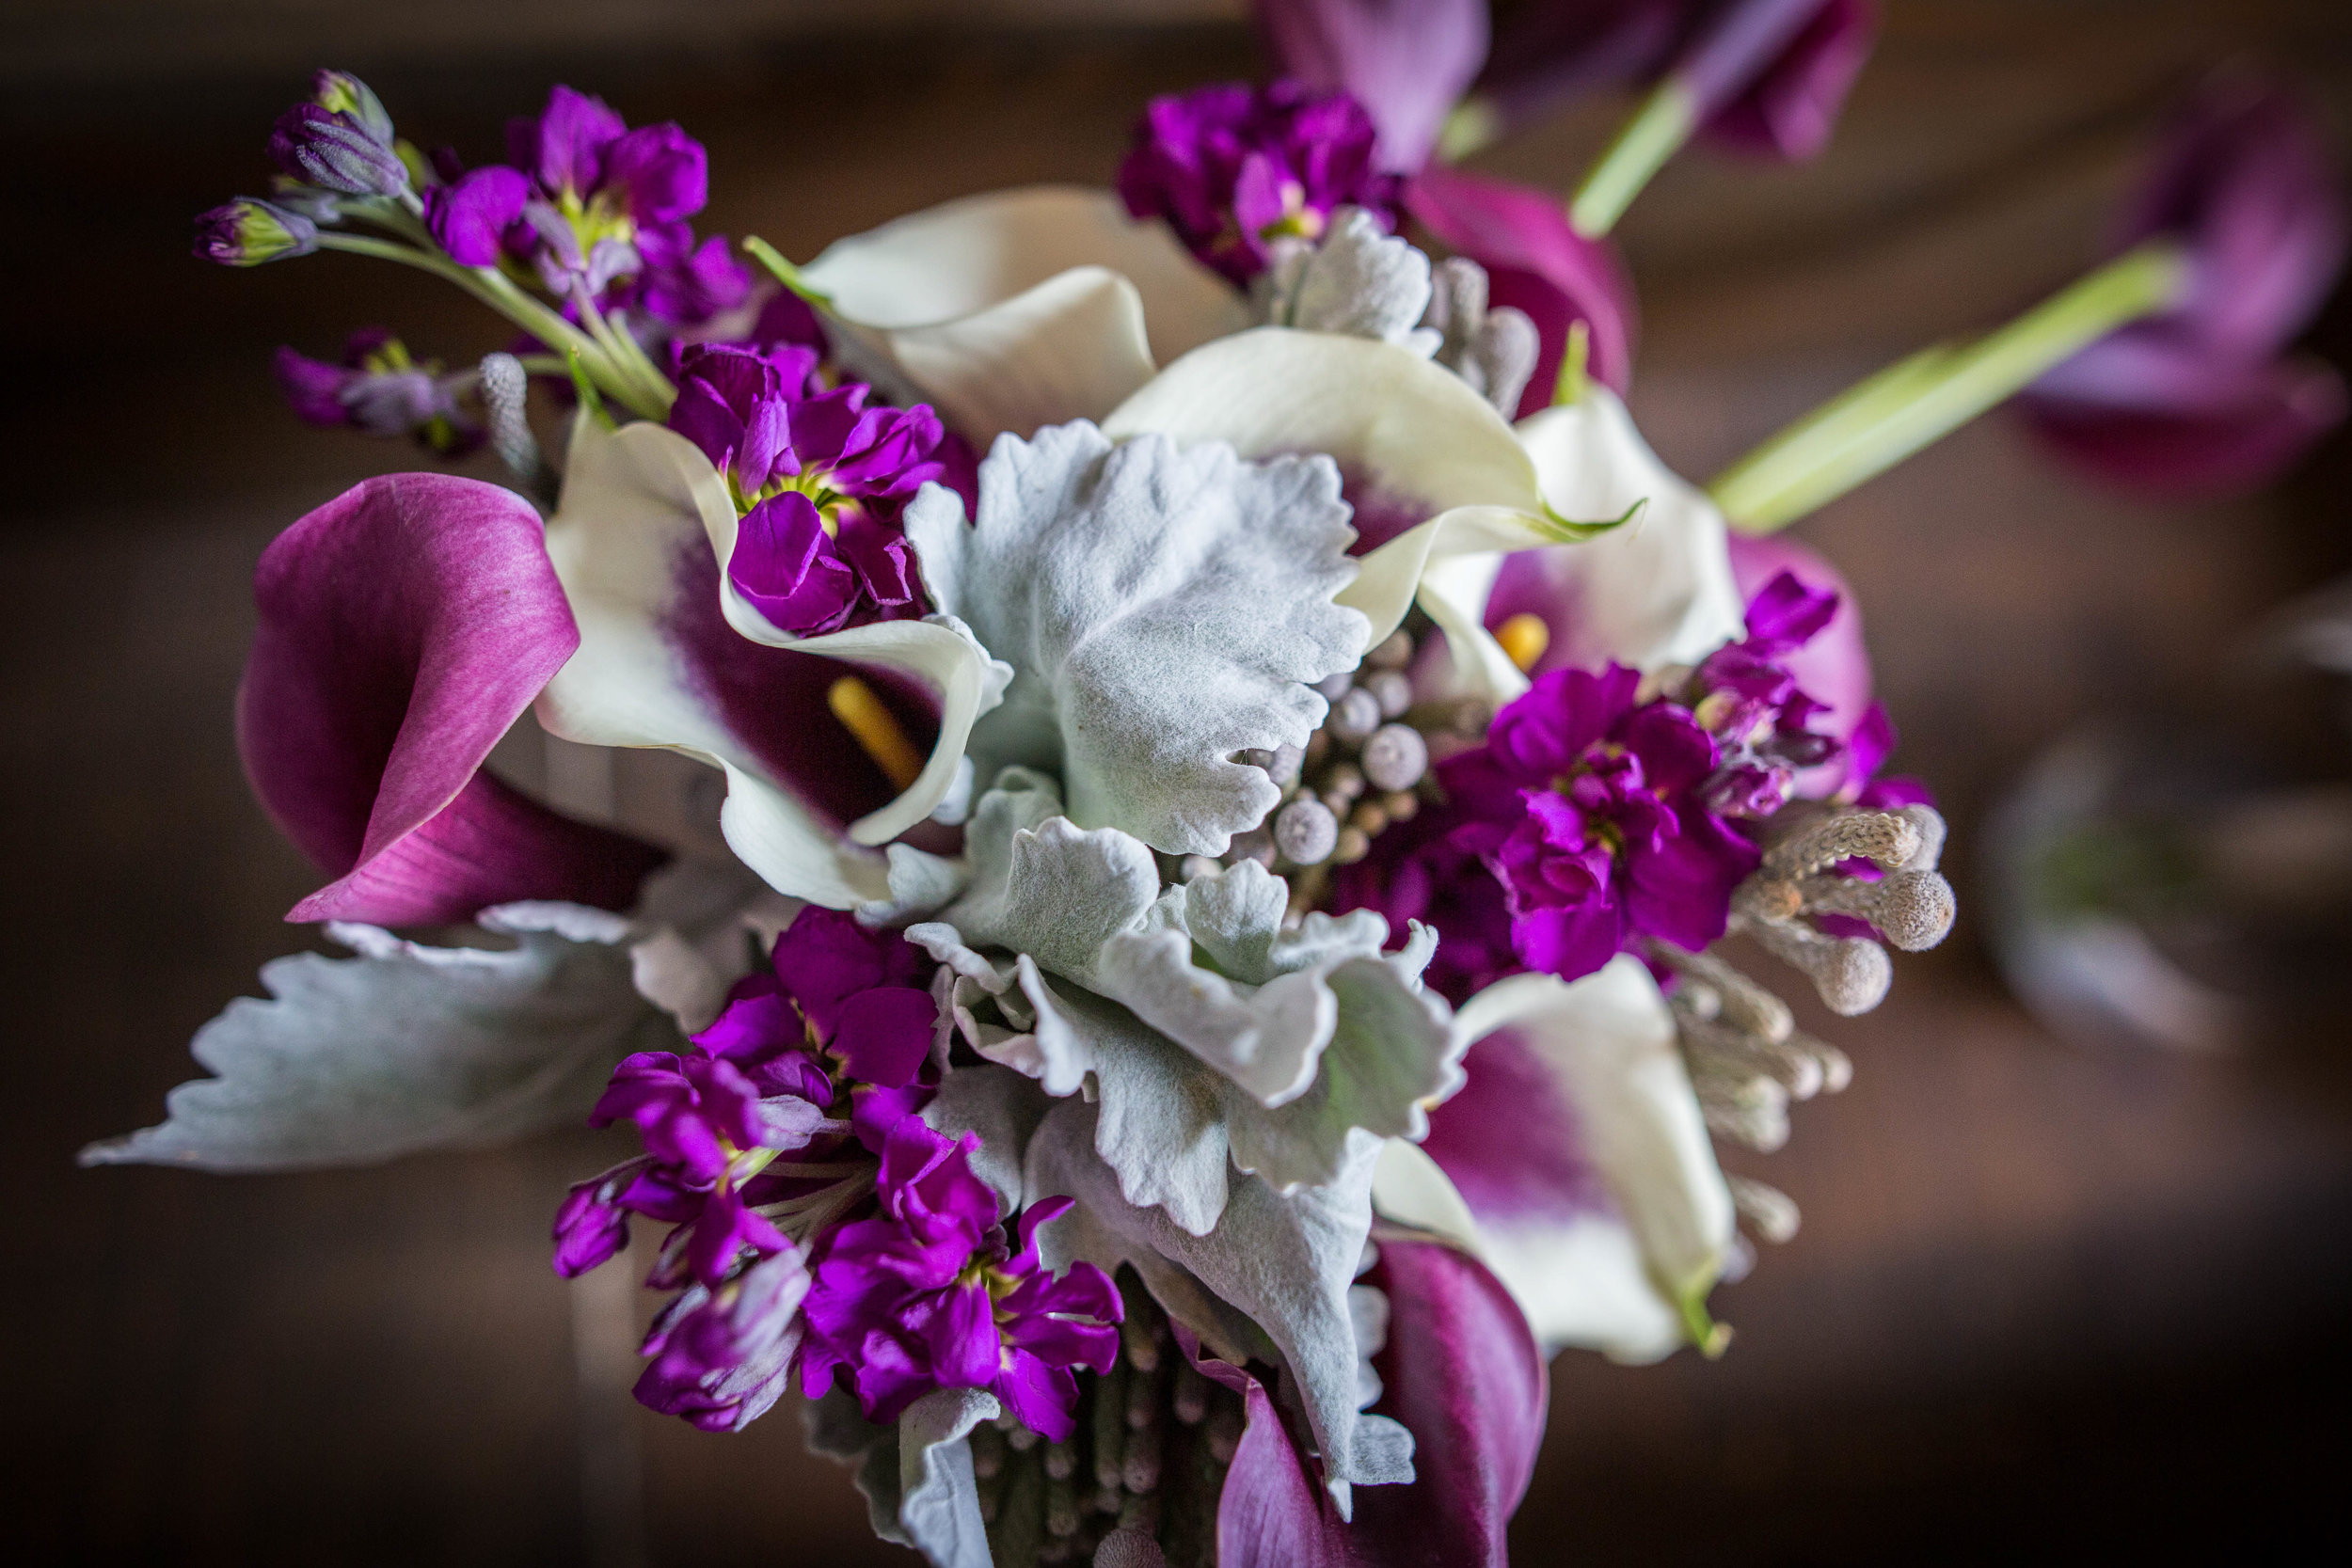 Kansas+City_Small+Wedding_Venue_Elope_Intimate_Ceremony_Constance & Carissa-001.jpg